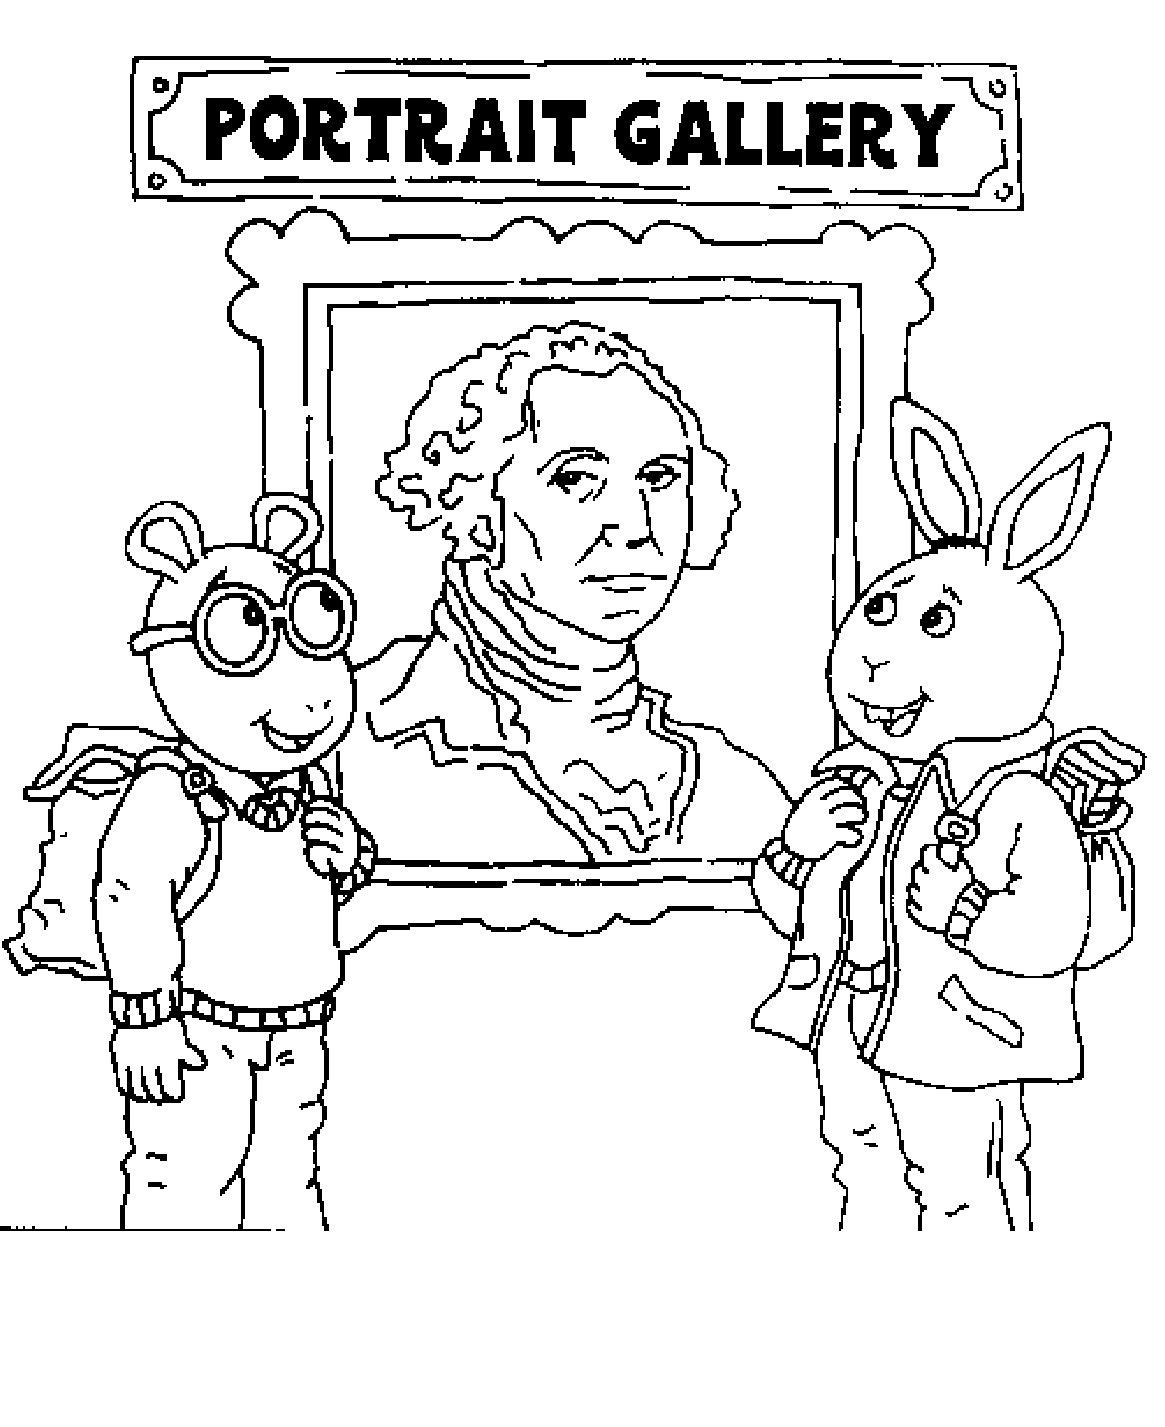 Free Arthur Coloring Pages Free, Download Free Clip Art, Free Clip Art on  Clipart Library   1427x1165